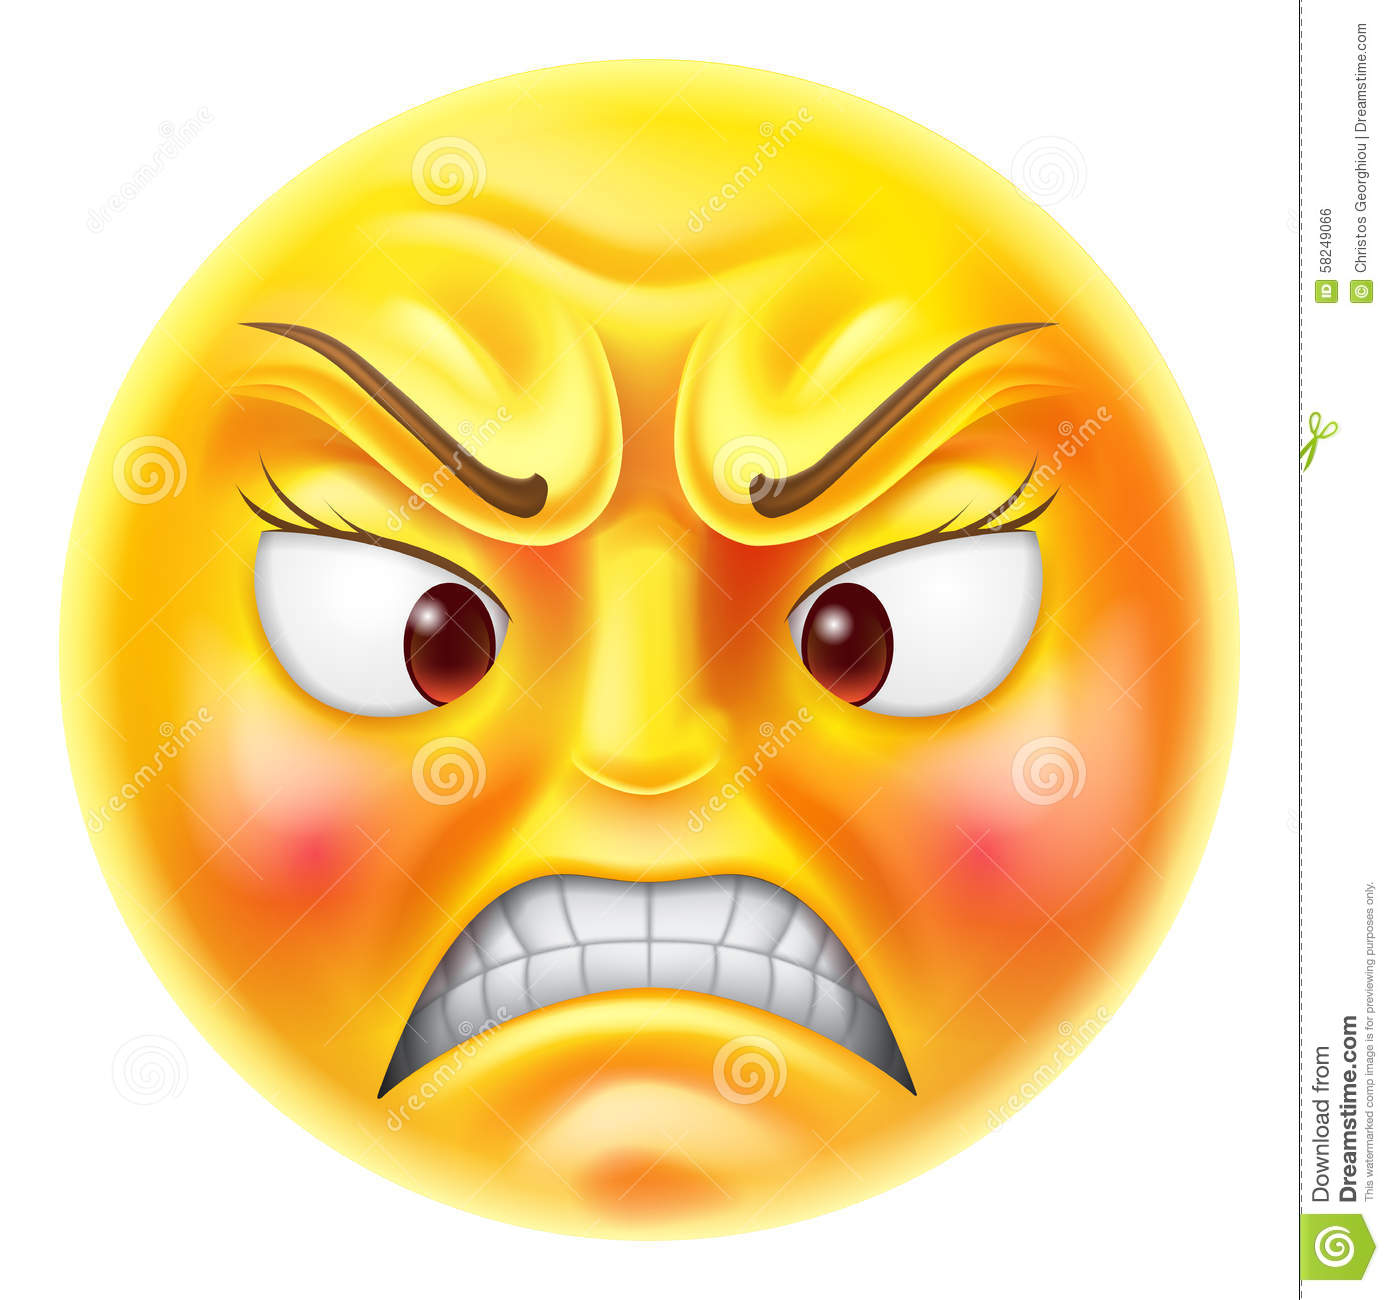 Emoji Mad Face Related Keywords & Suggestions - Emoji Mad Face Long ...